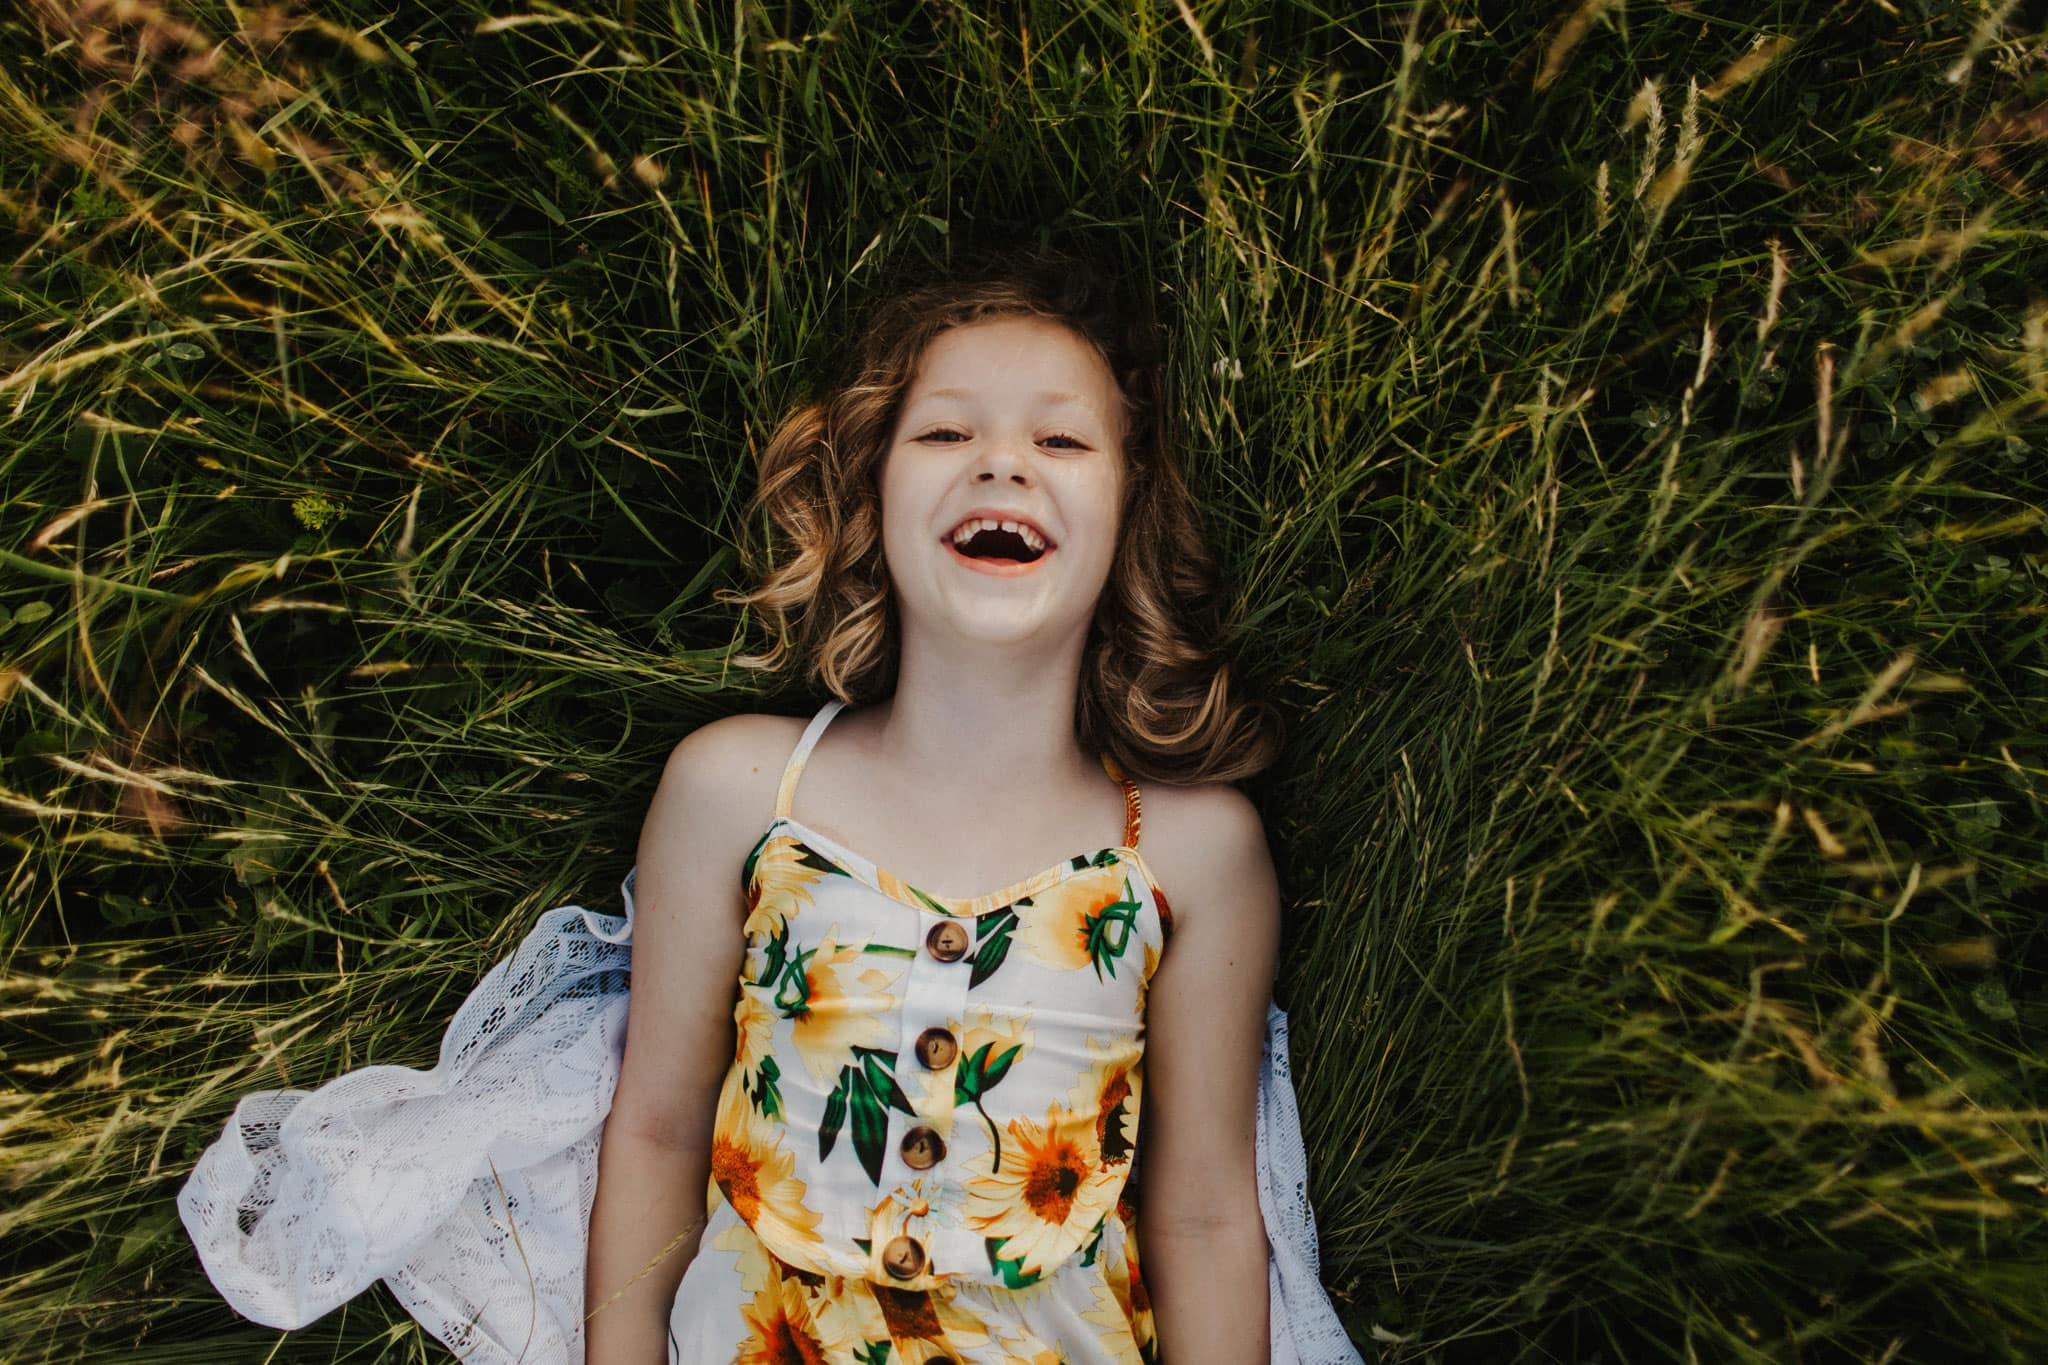 portland oregon child laughing in grass